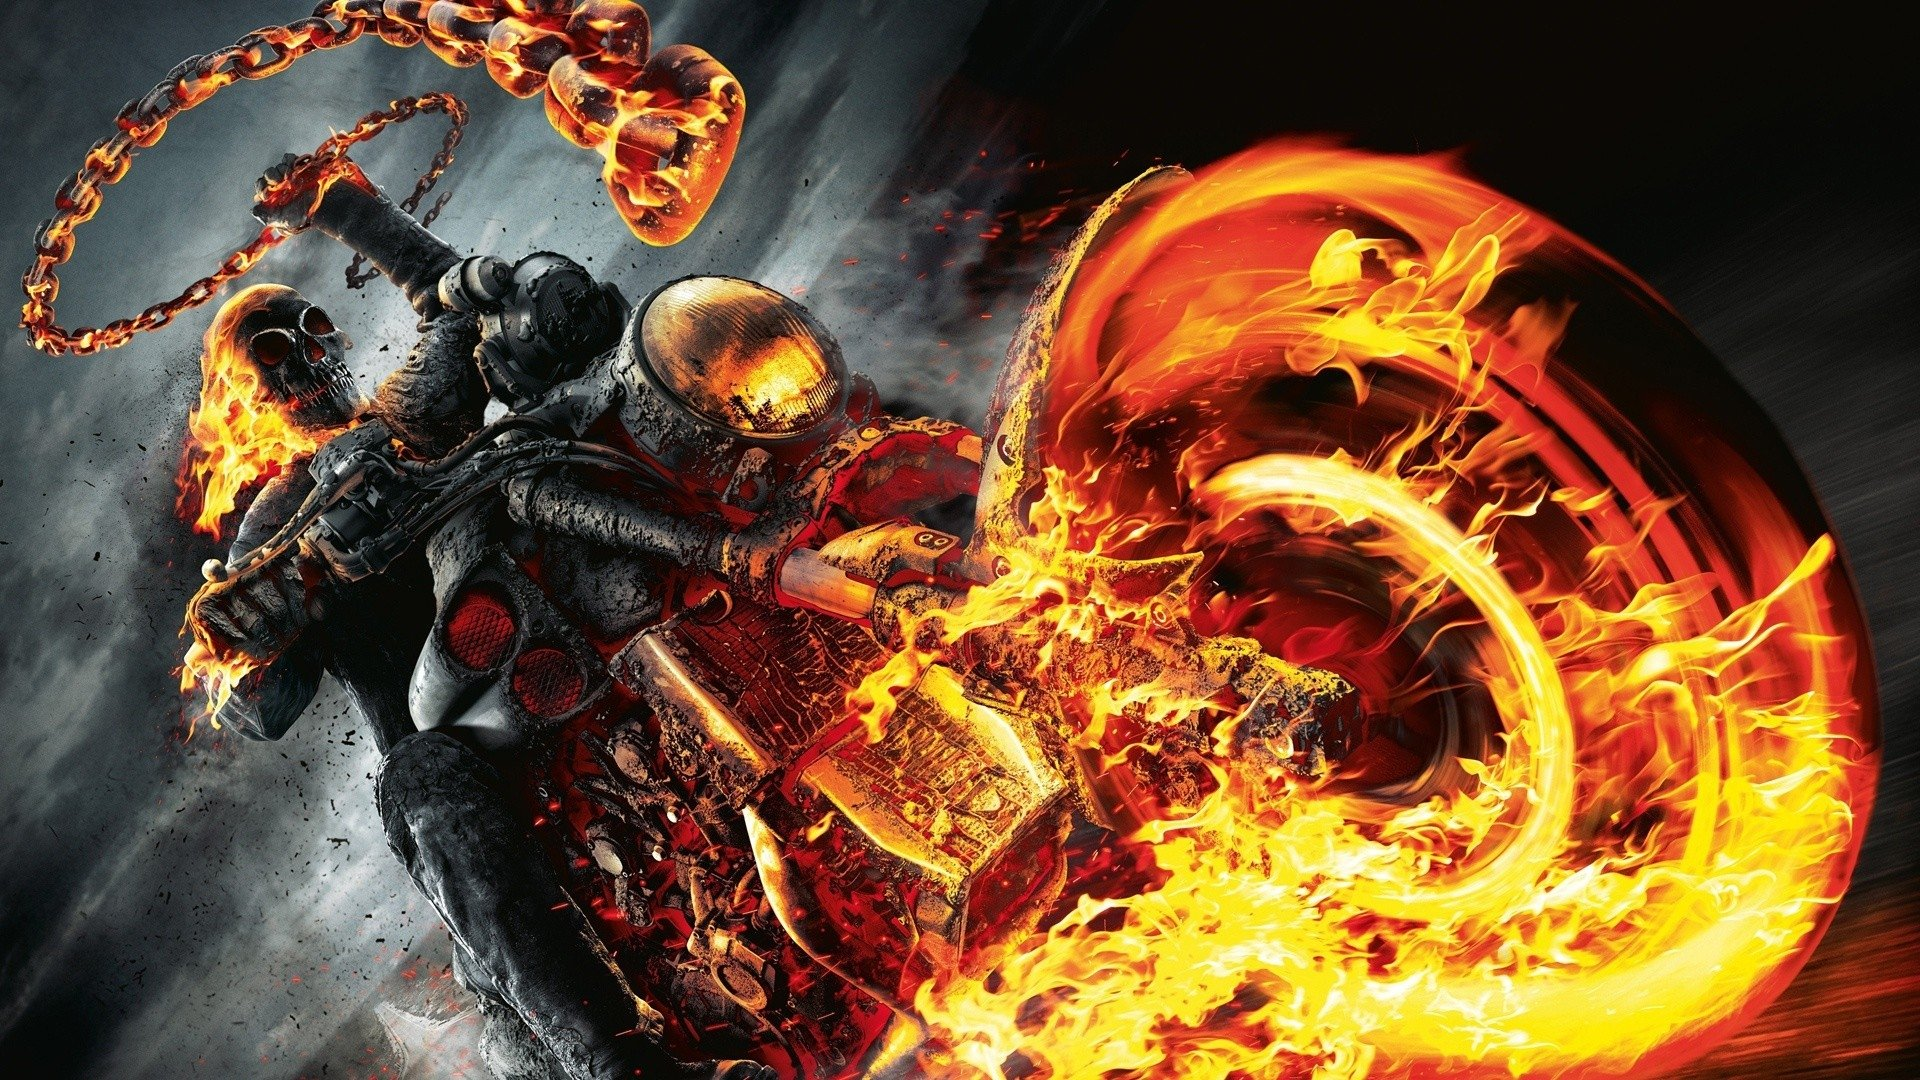 144 Ghost Rider HD Wallpapers